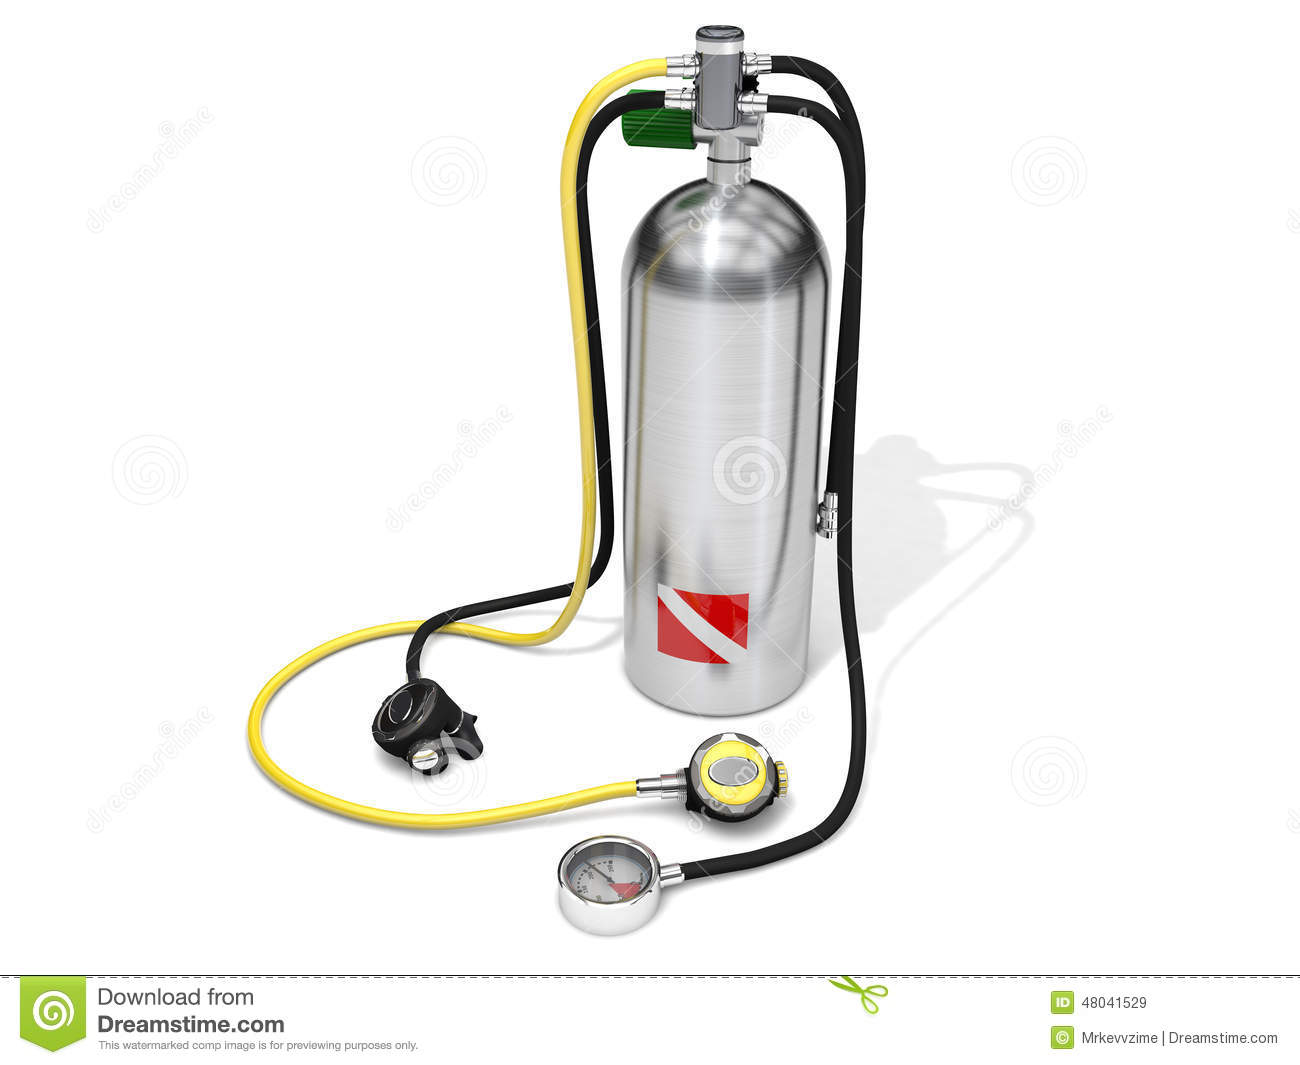 Scuba diving gear on white background. First stage regulator, second ...